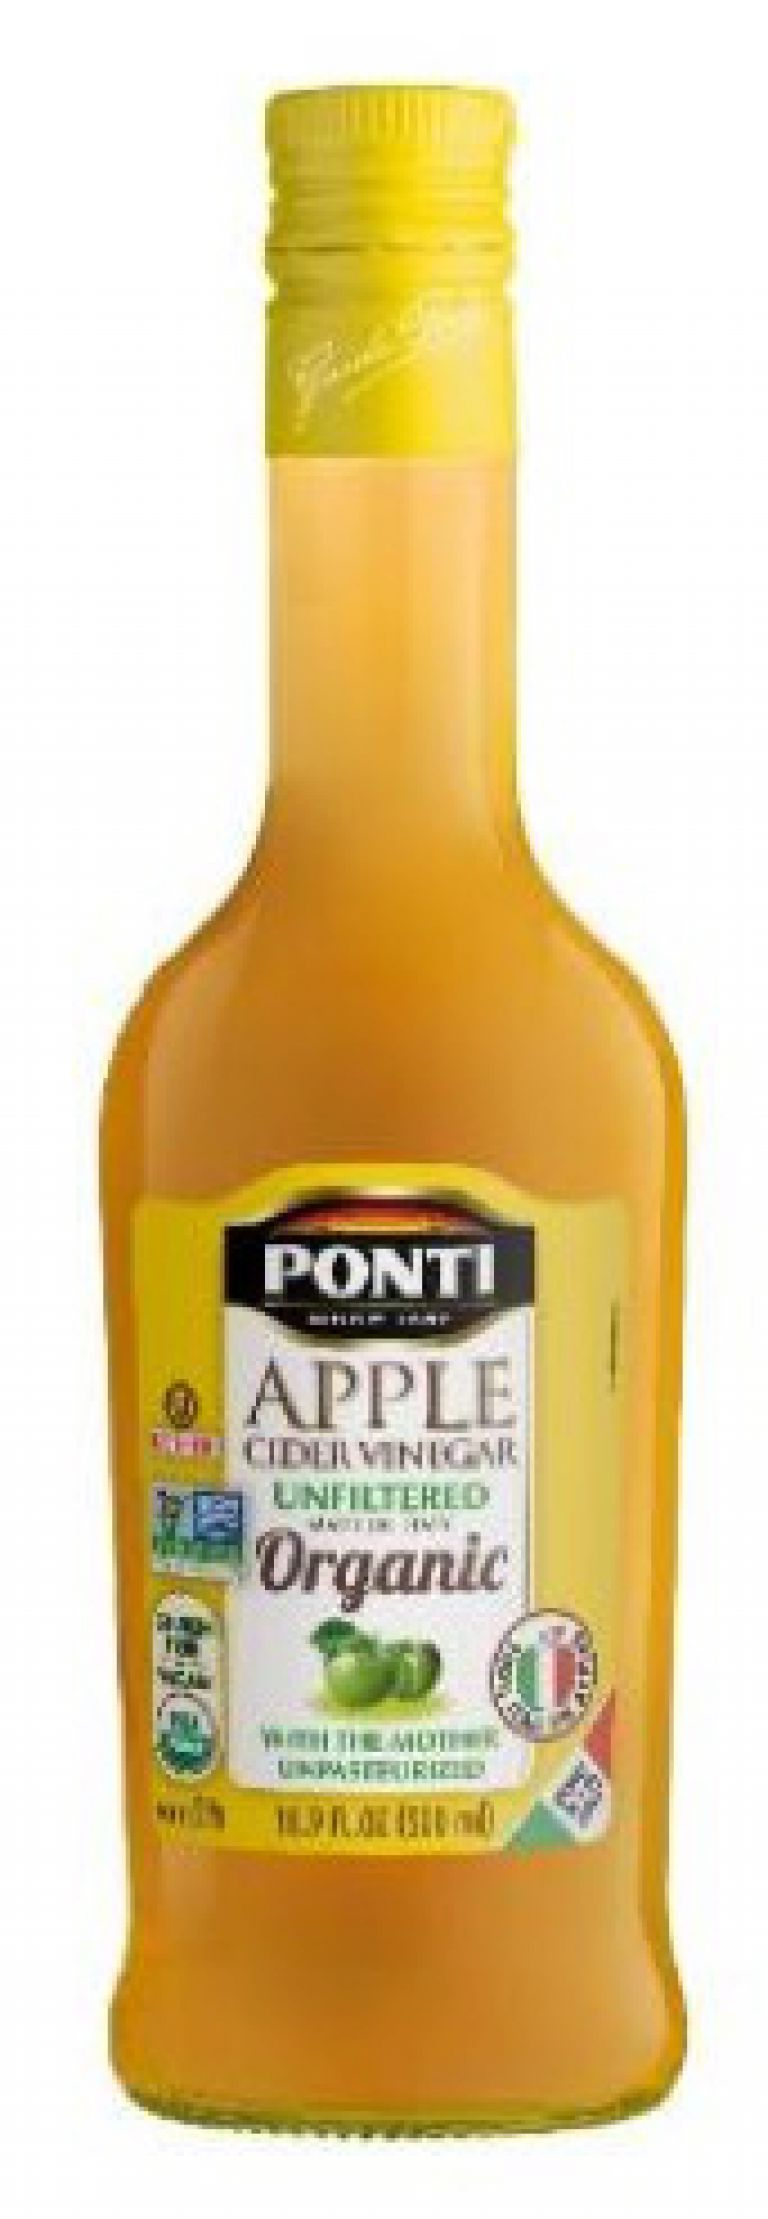 PONTI UNFLTED APPLE CIDER 500 ML